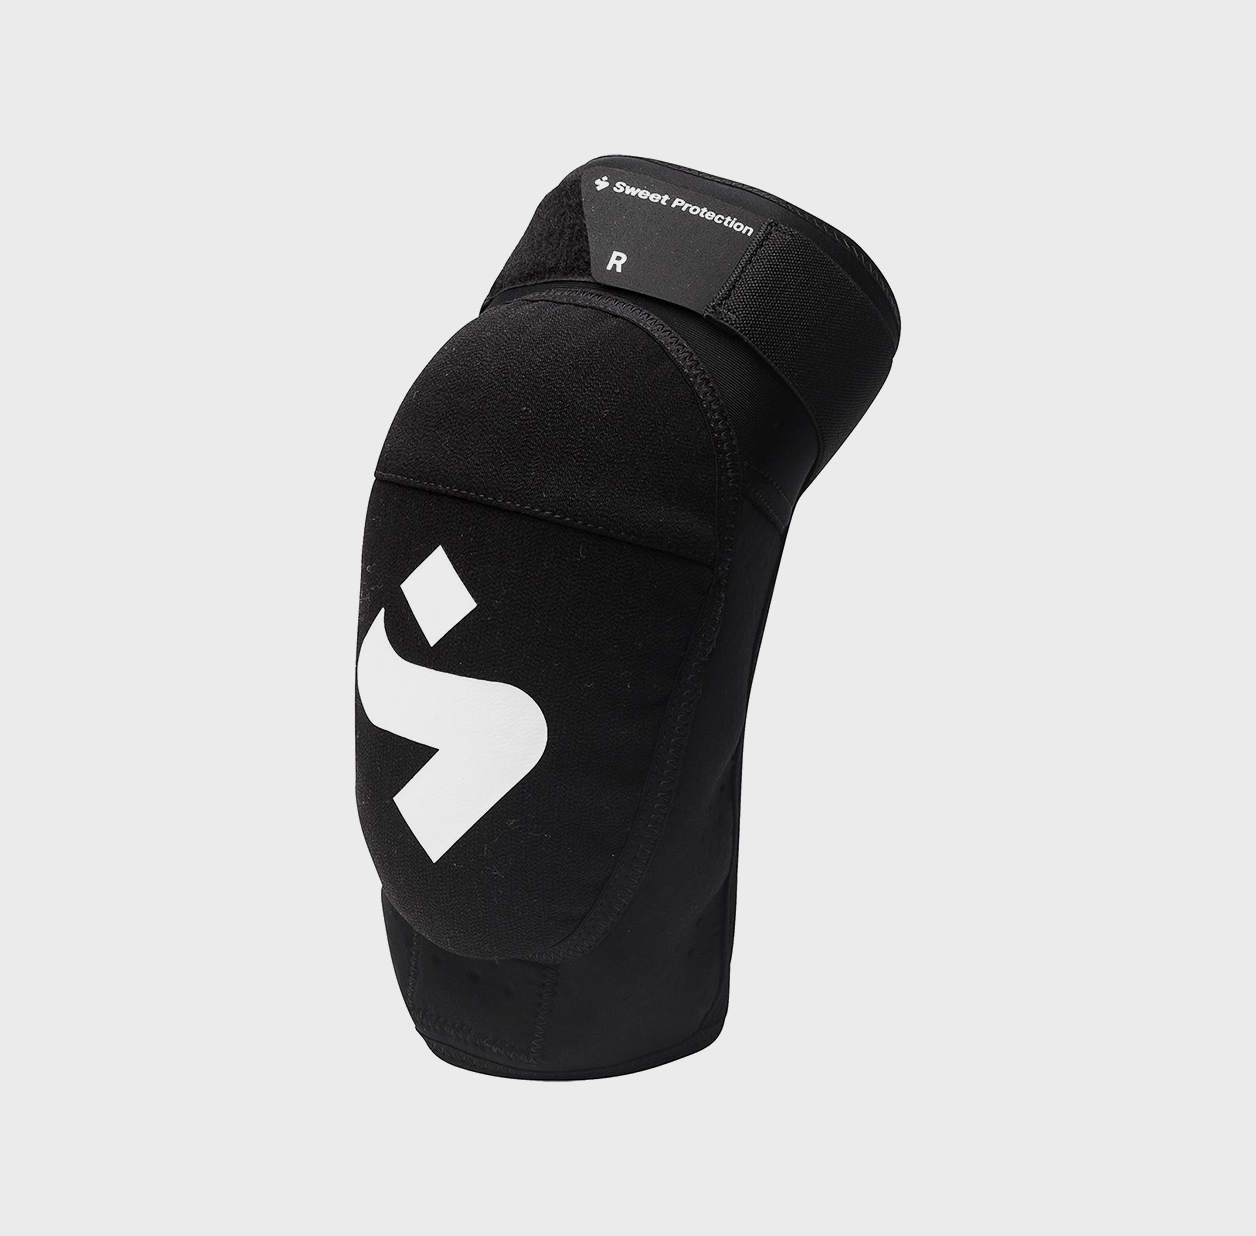 Outville_Mountainbike Produkte_Sweet Protection Knee Pad